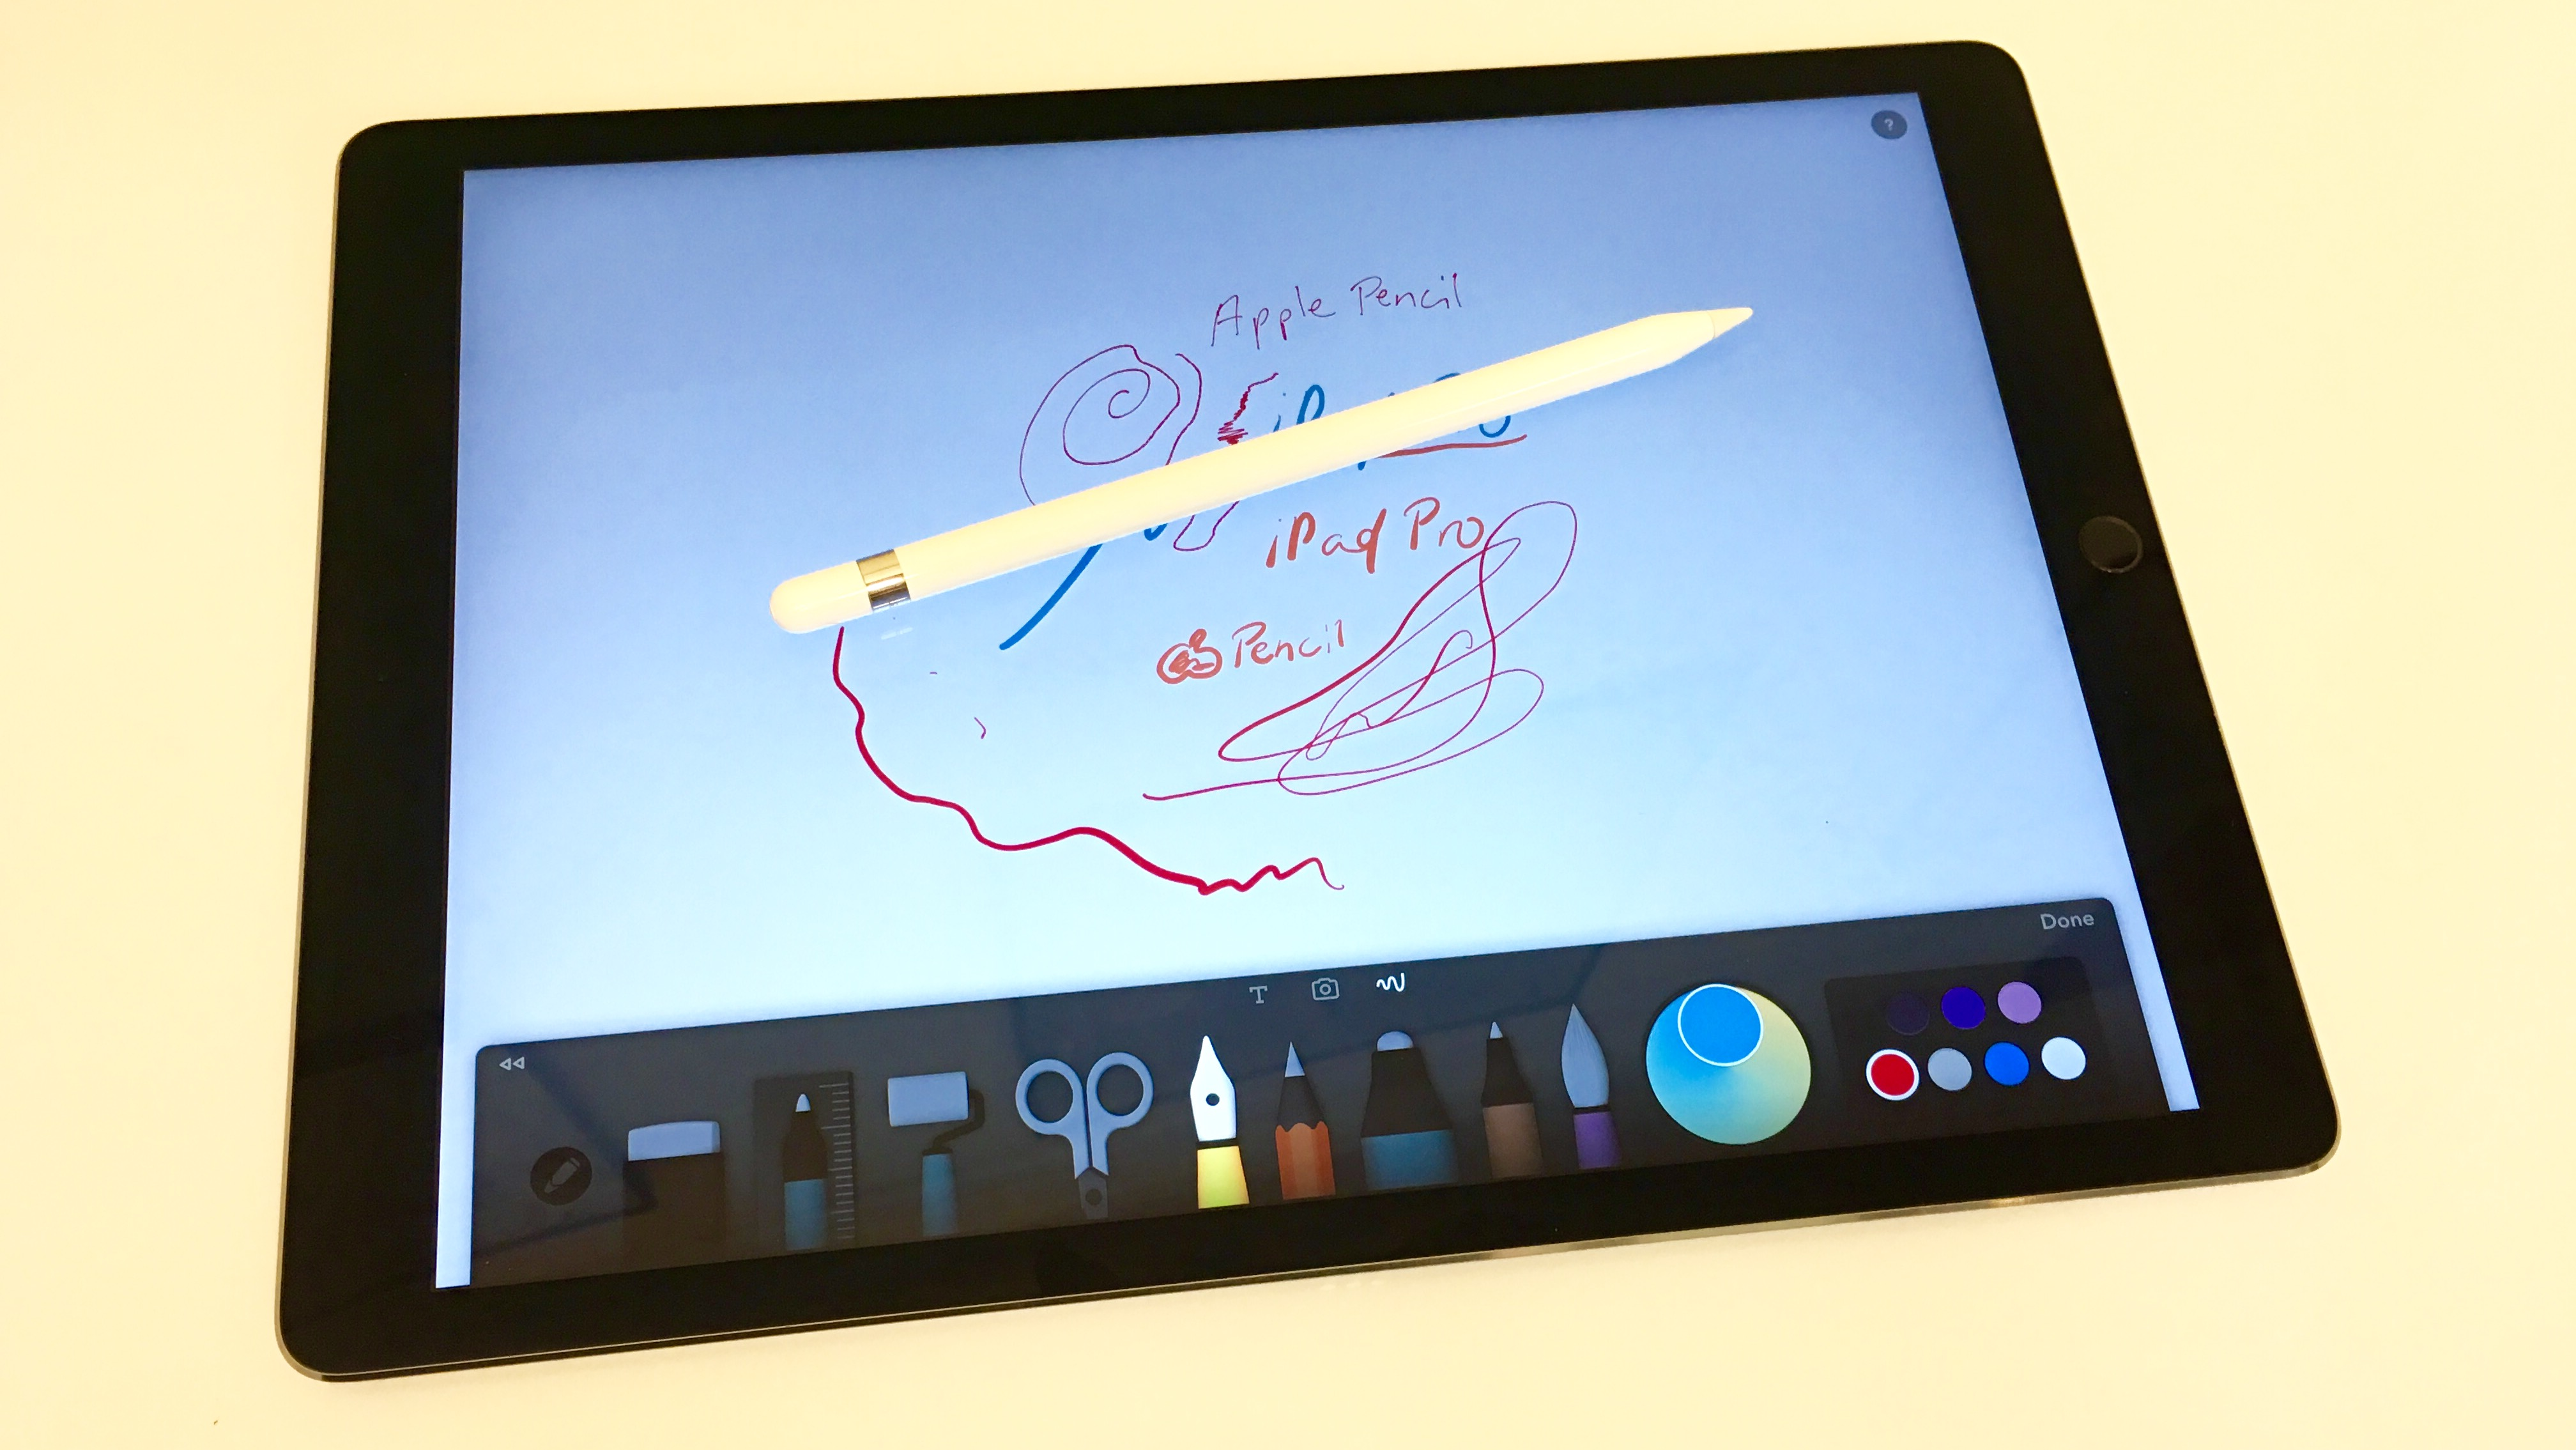 How to connect apple pencil 2nd generation to ipad pro